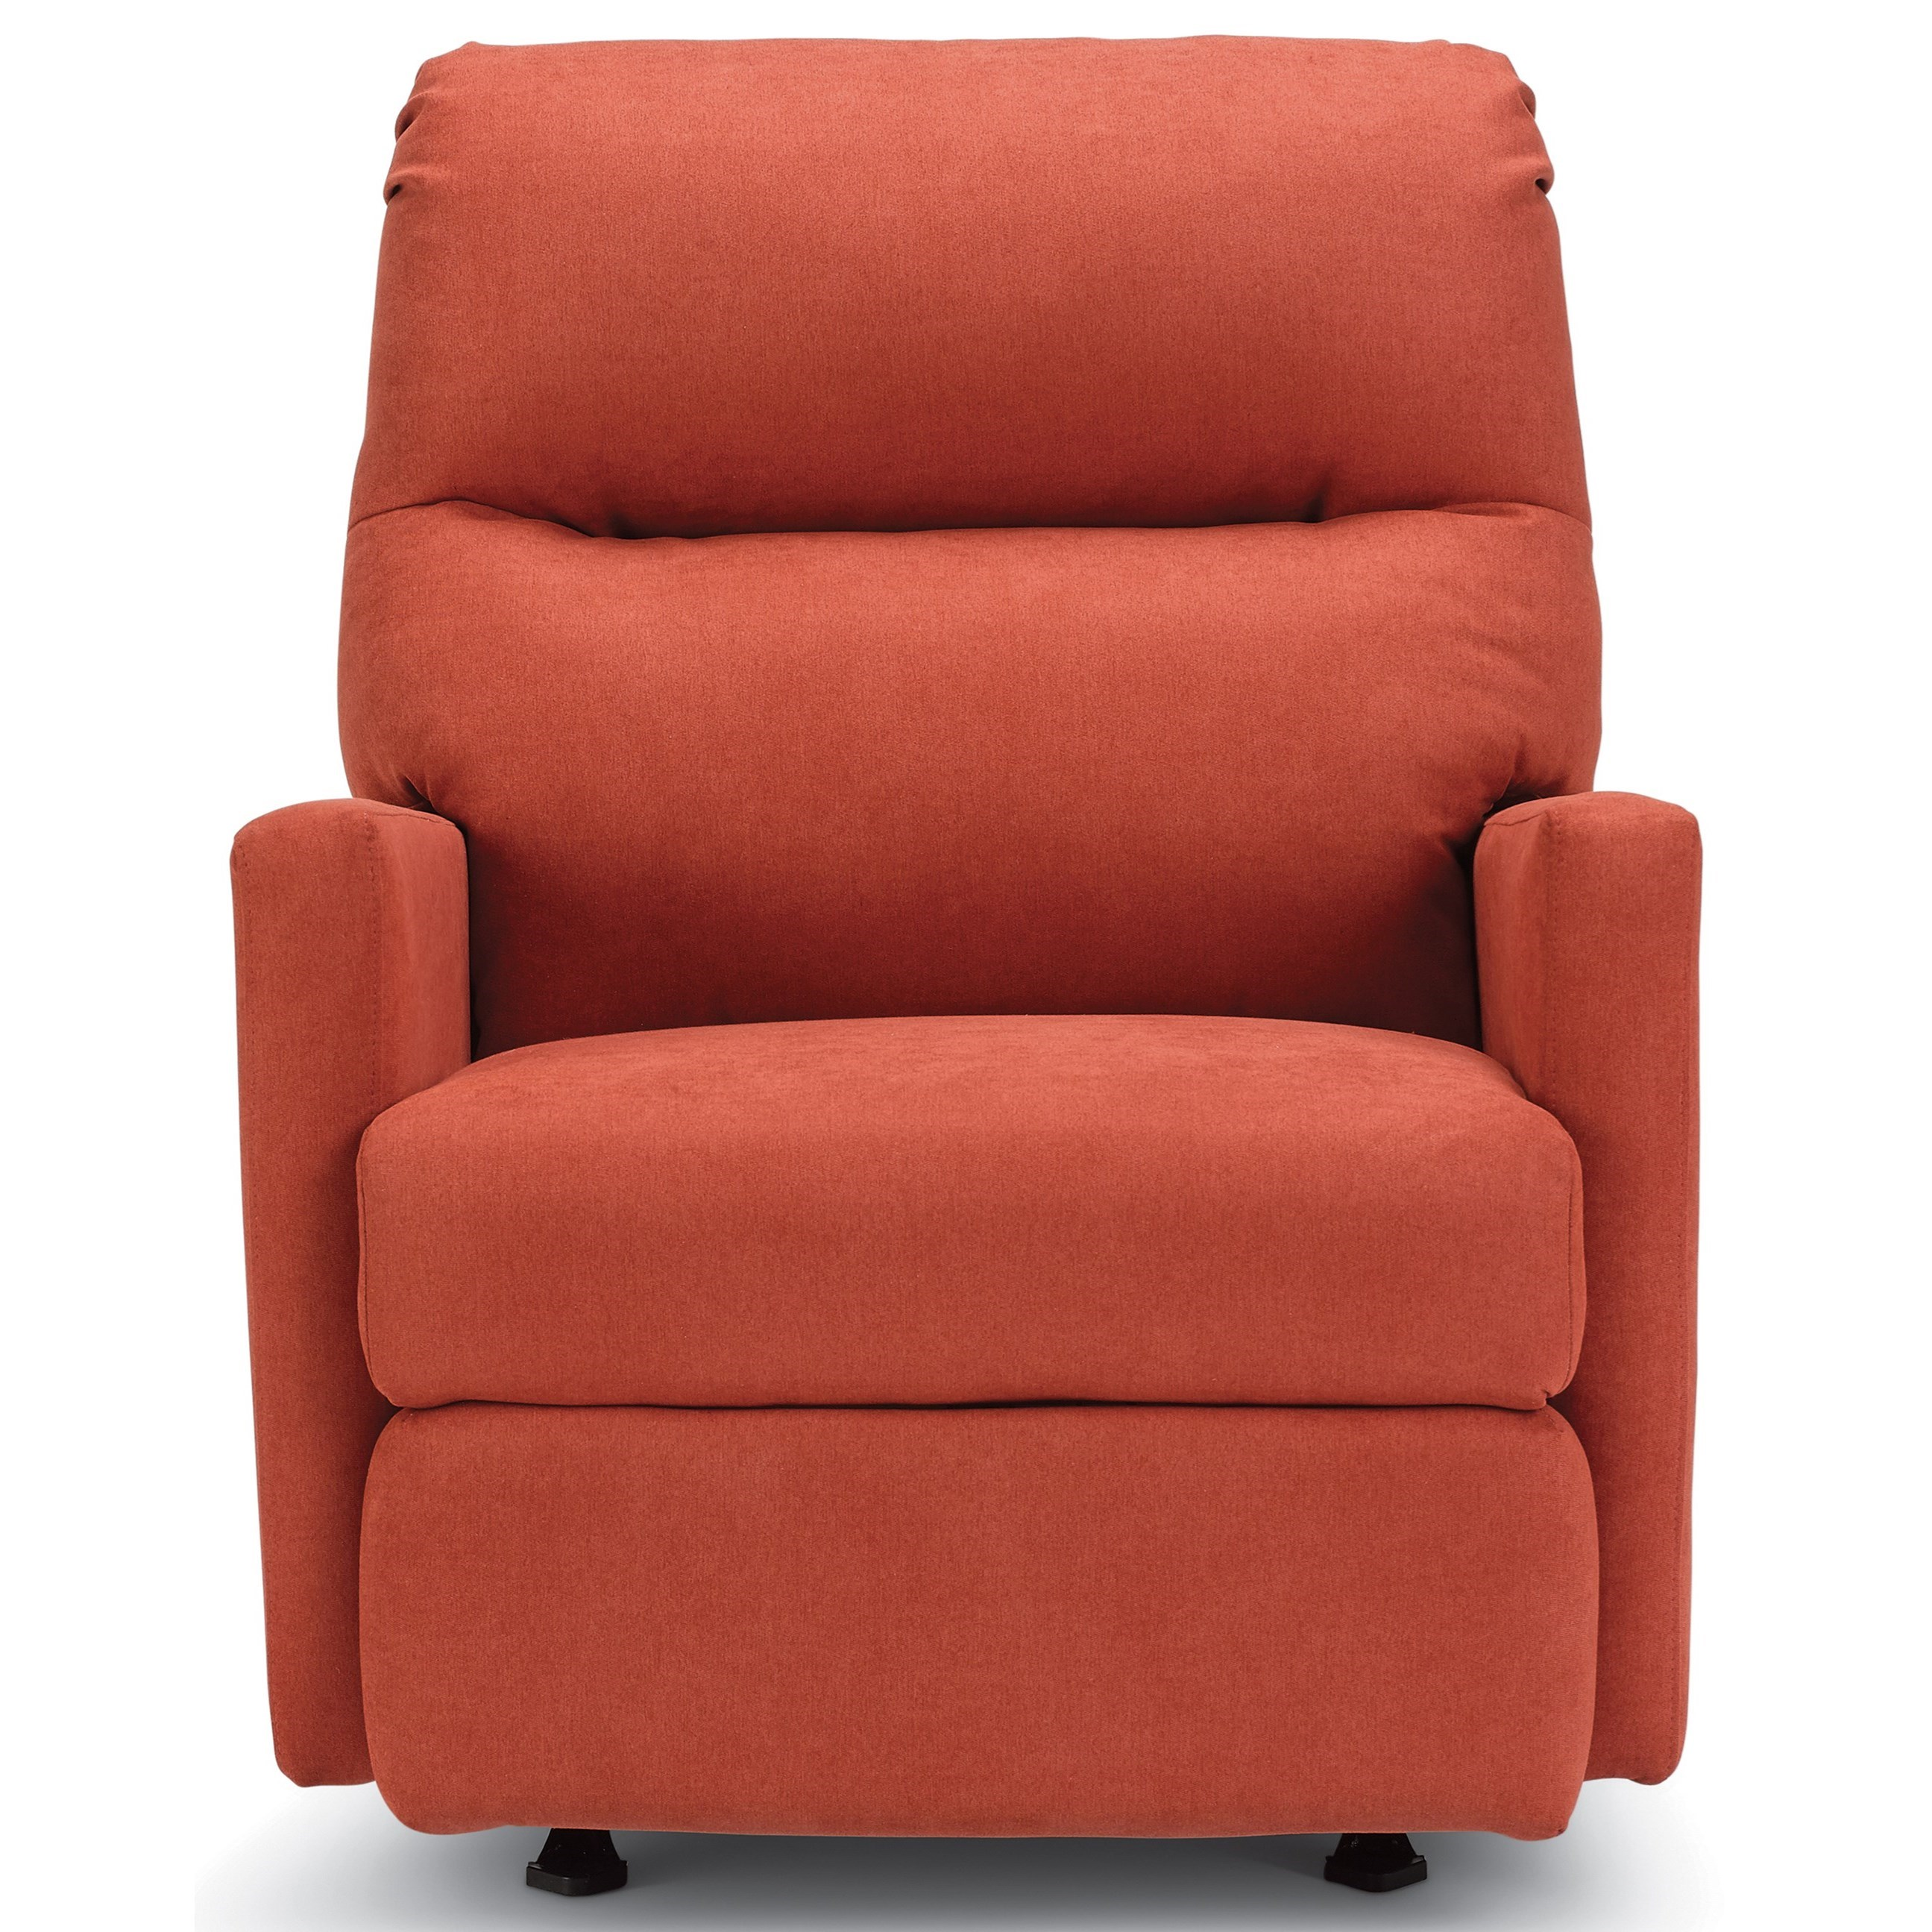 Covina Power Swivel Glider Recliner by Best Home Furnishings at Baer's Furniture